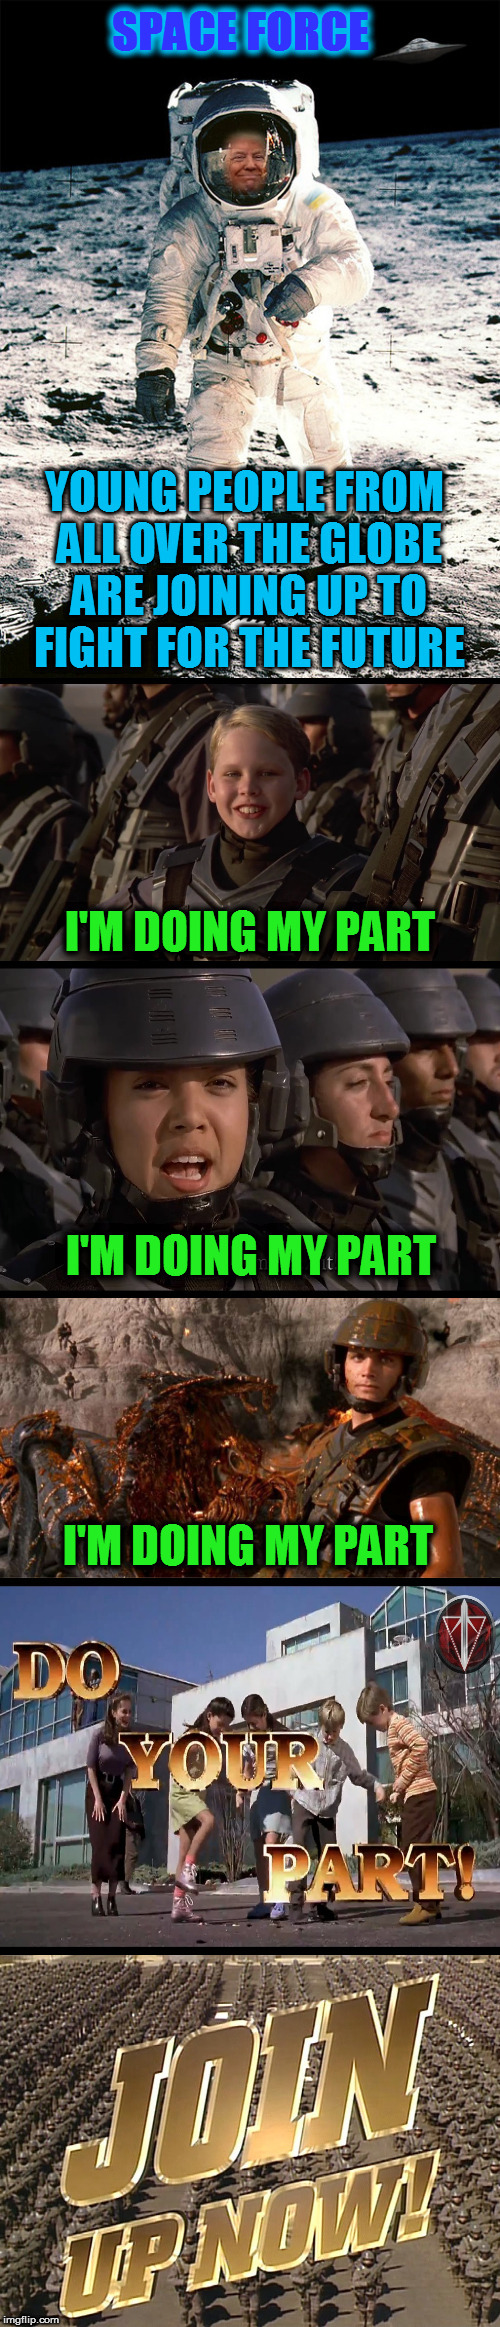 I'm Donald Trump and on behalf of the Space Force I approve this message! | SPACE FORCE YOUNG PEOPLE FROM ALL OVER THE GLOBE ARE JOINING UP TO FIGHT FOR THE FUTURE; I'M DOING MY PART; I'M DOING MY PART; I'M DOING MY  | image tagged in memes,space force,starship troopers,donald trump,just for fun,laughs | made w/ Imgflip meme maker